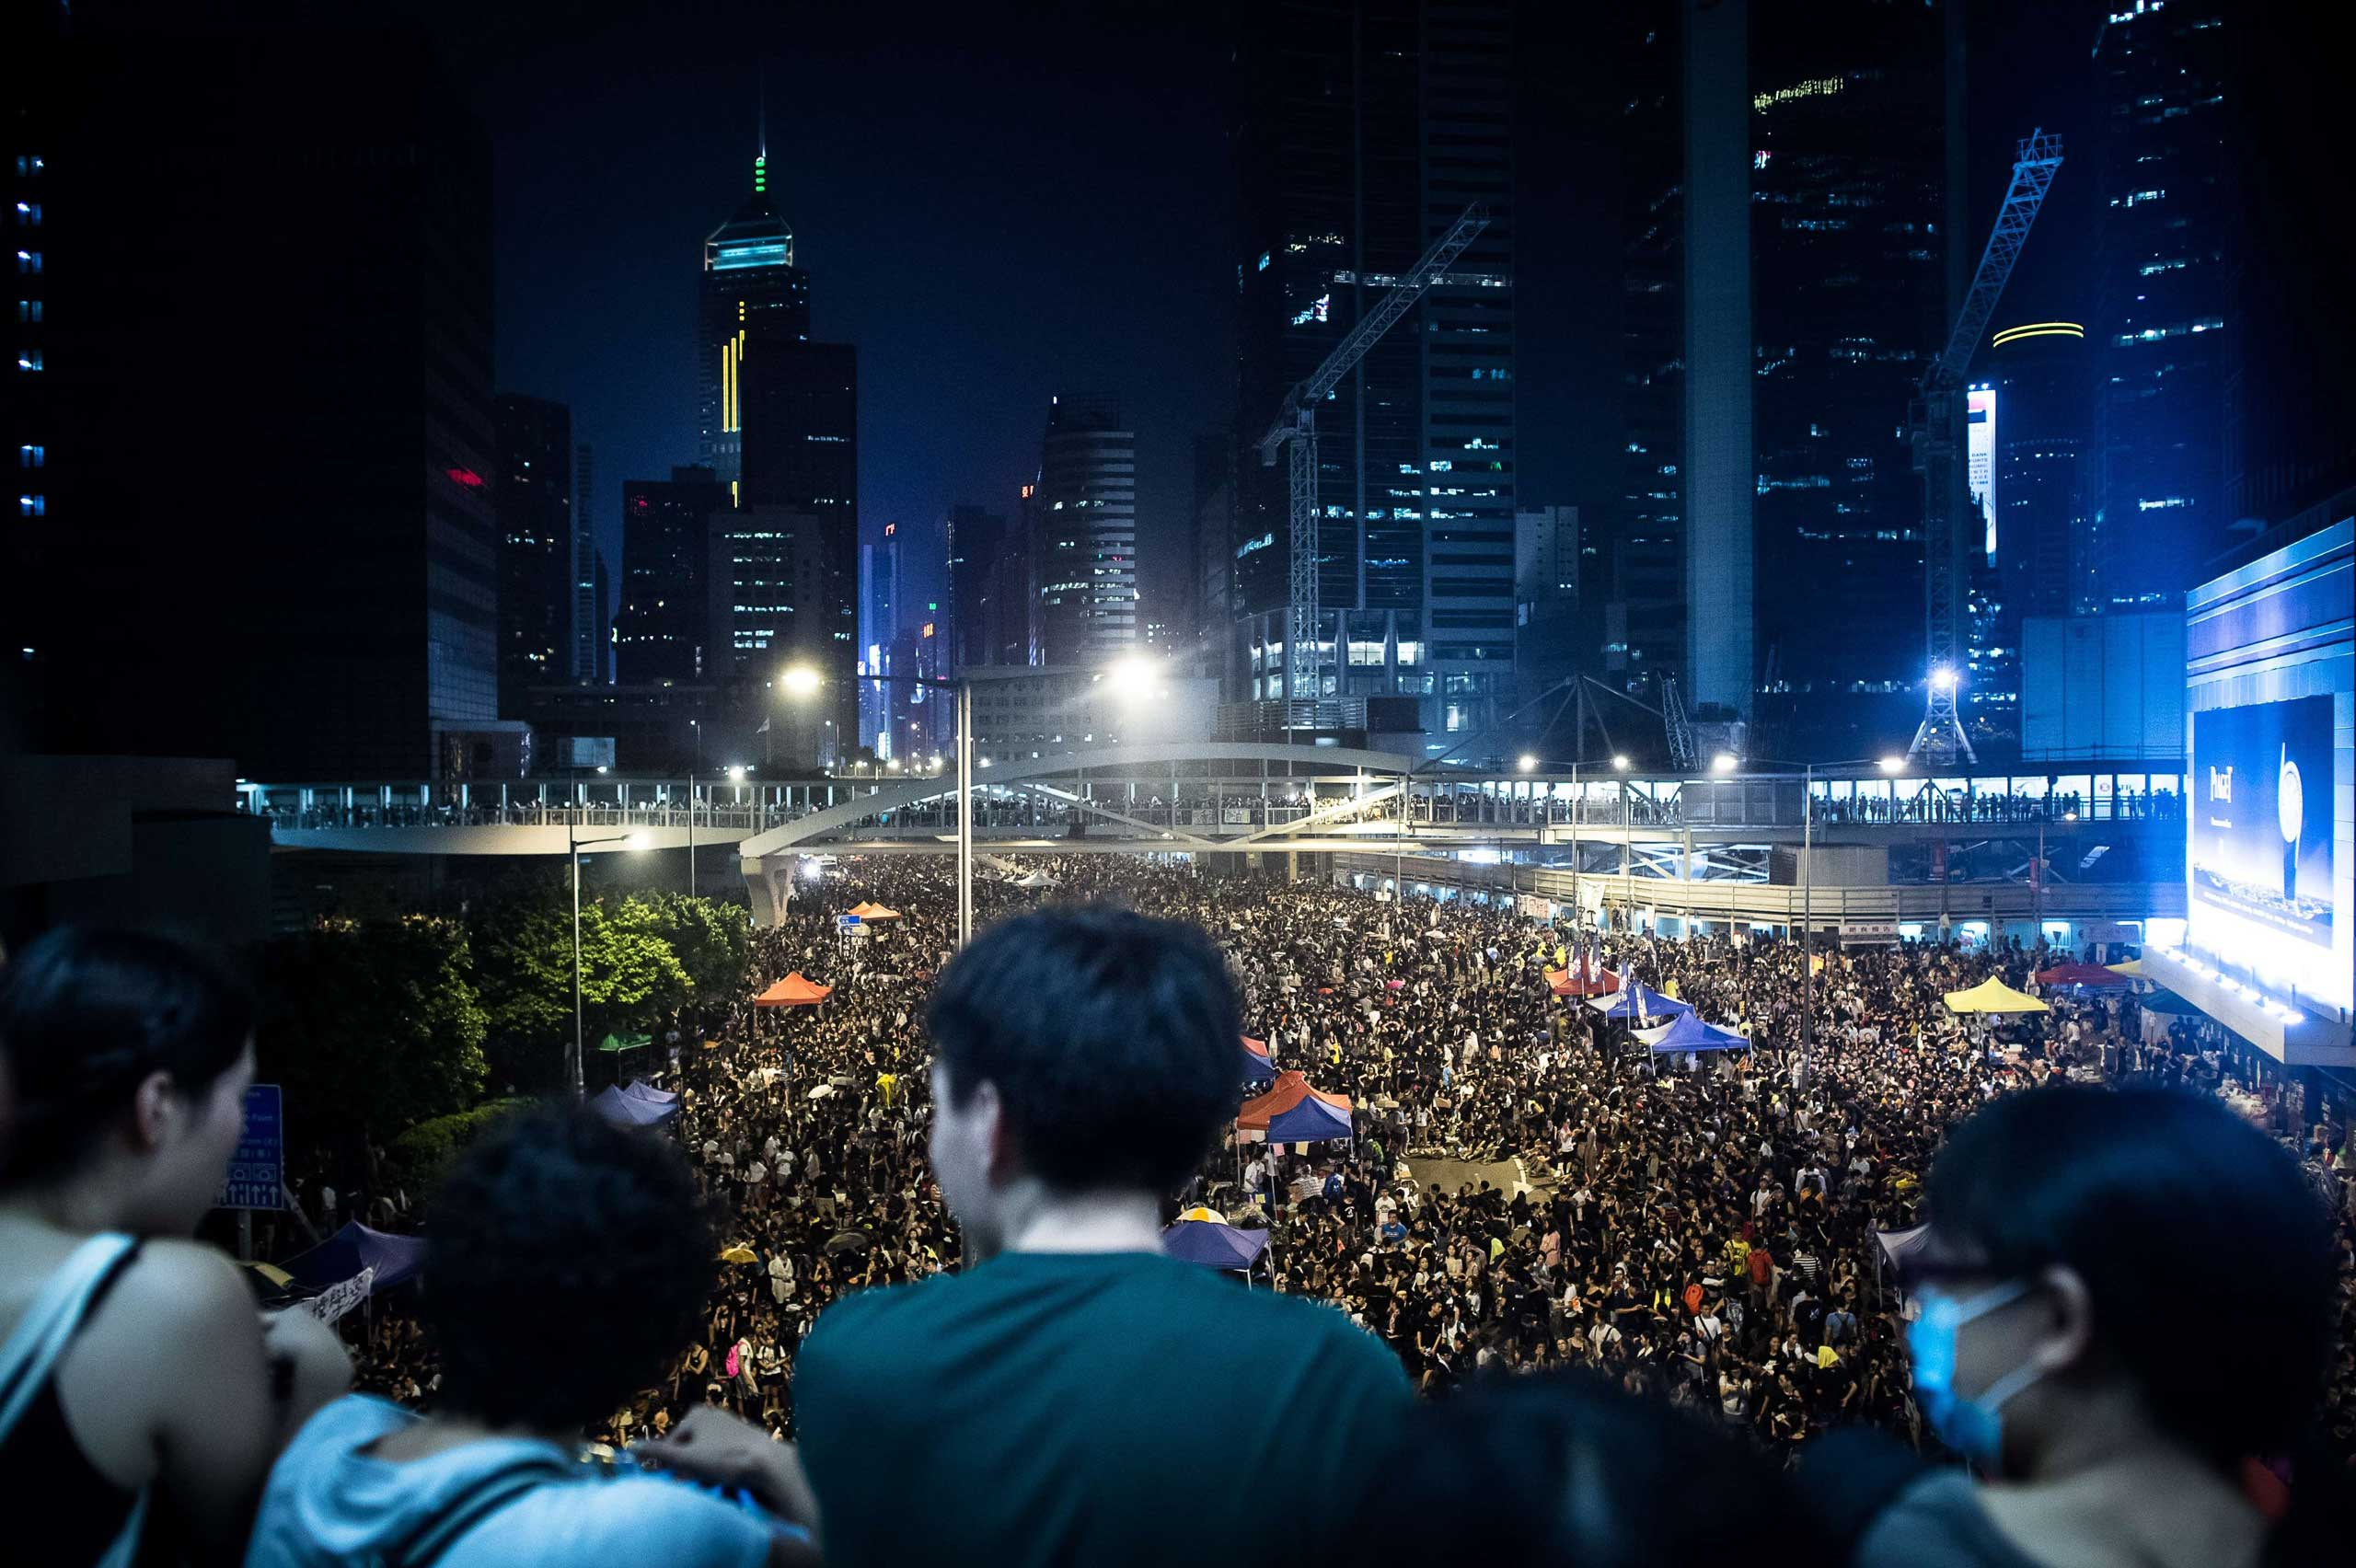 Pro-democracy demonstrators gather for the third night in Hong Kong on Sept. 30, 2014.